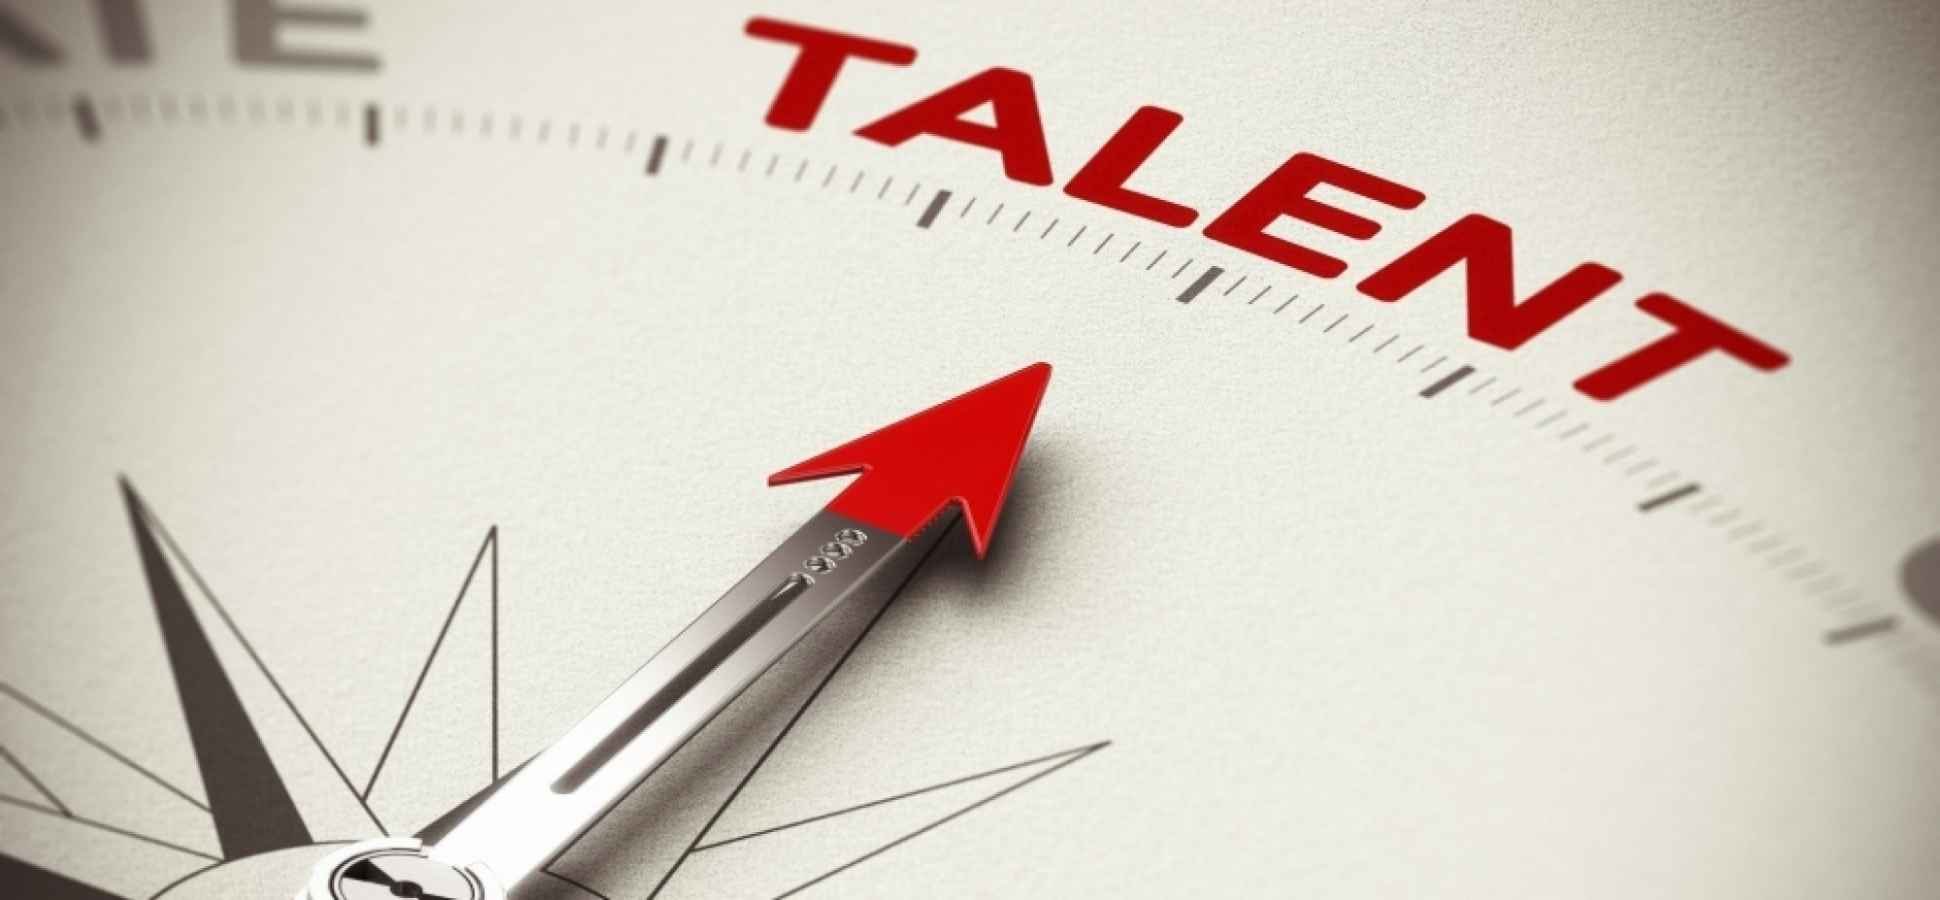 High-Impact HR for Entrepreneurs: A Cautionary Perspective